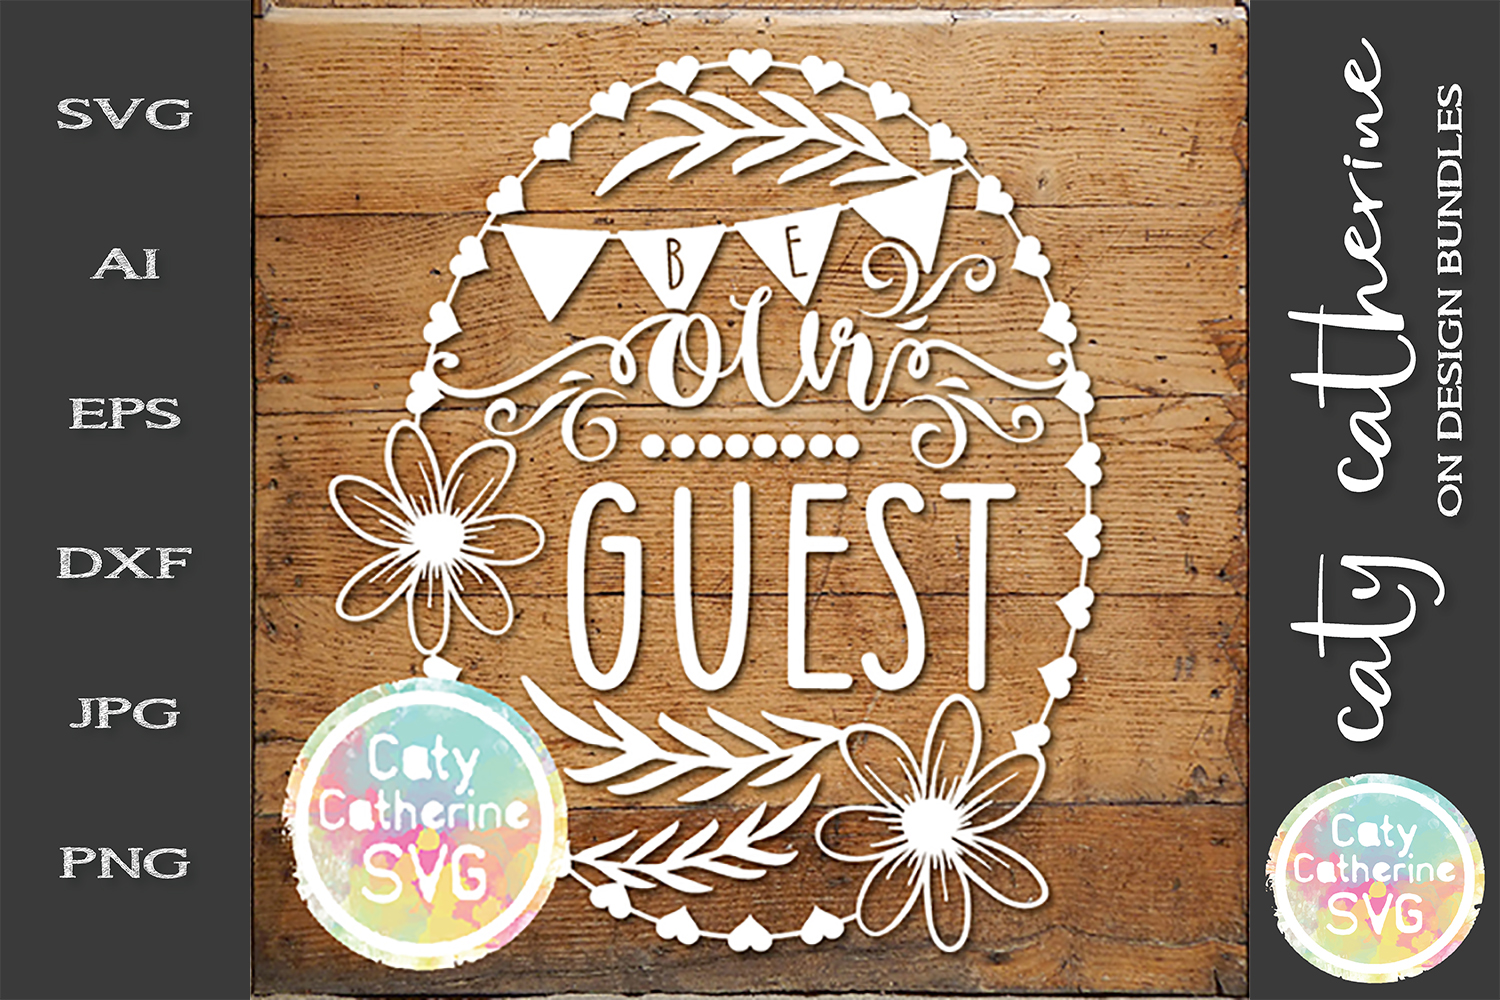 Be Our Guest Home Wooden Sign SVG Cut File example image 1